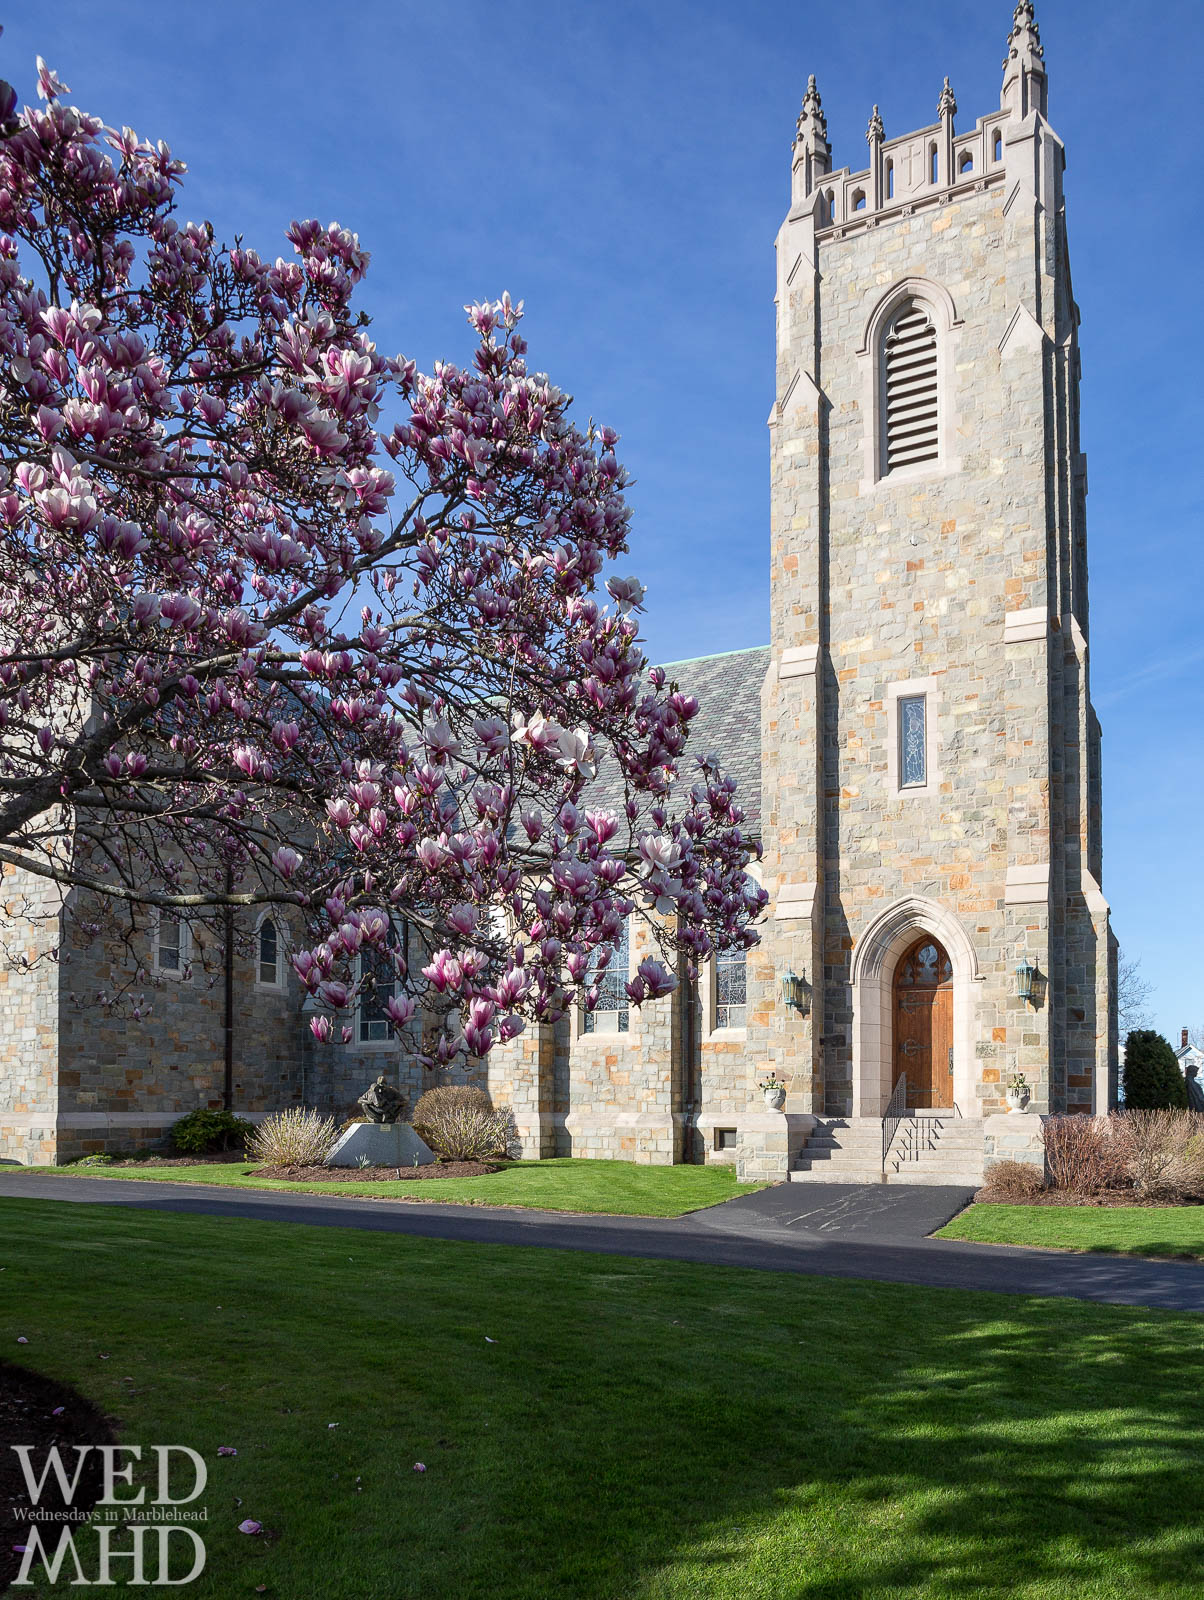 magnolia tree in front of church